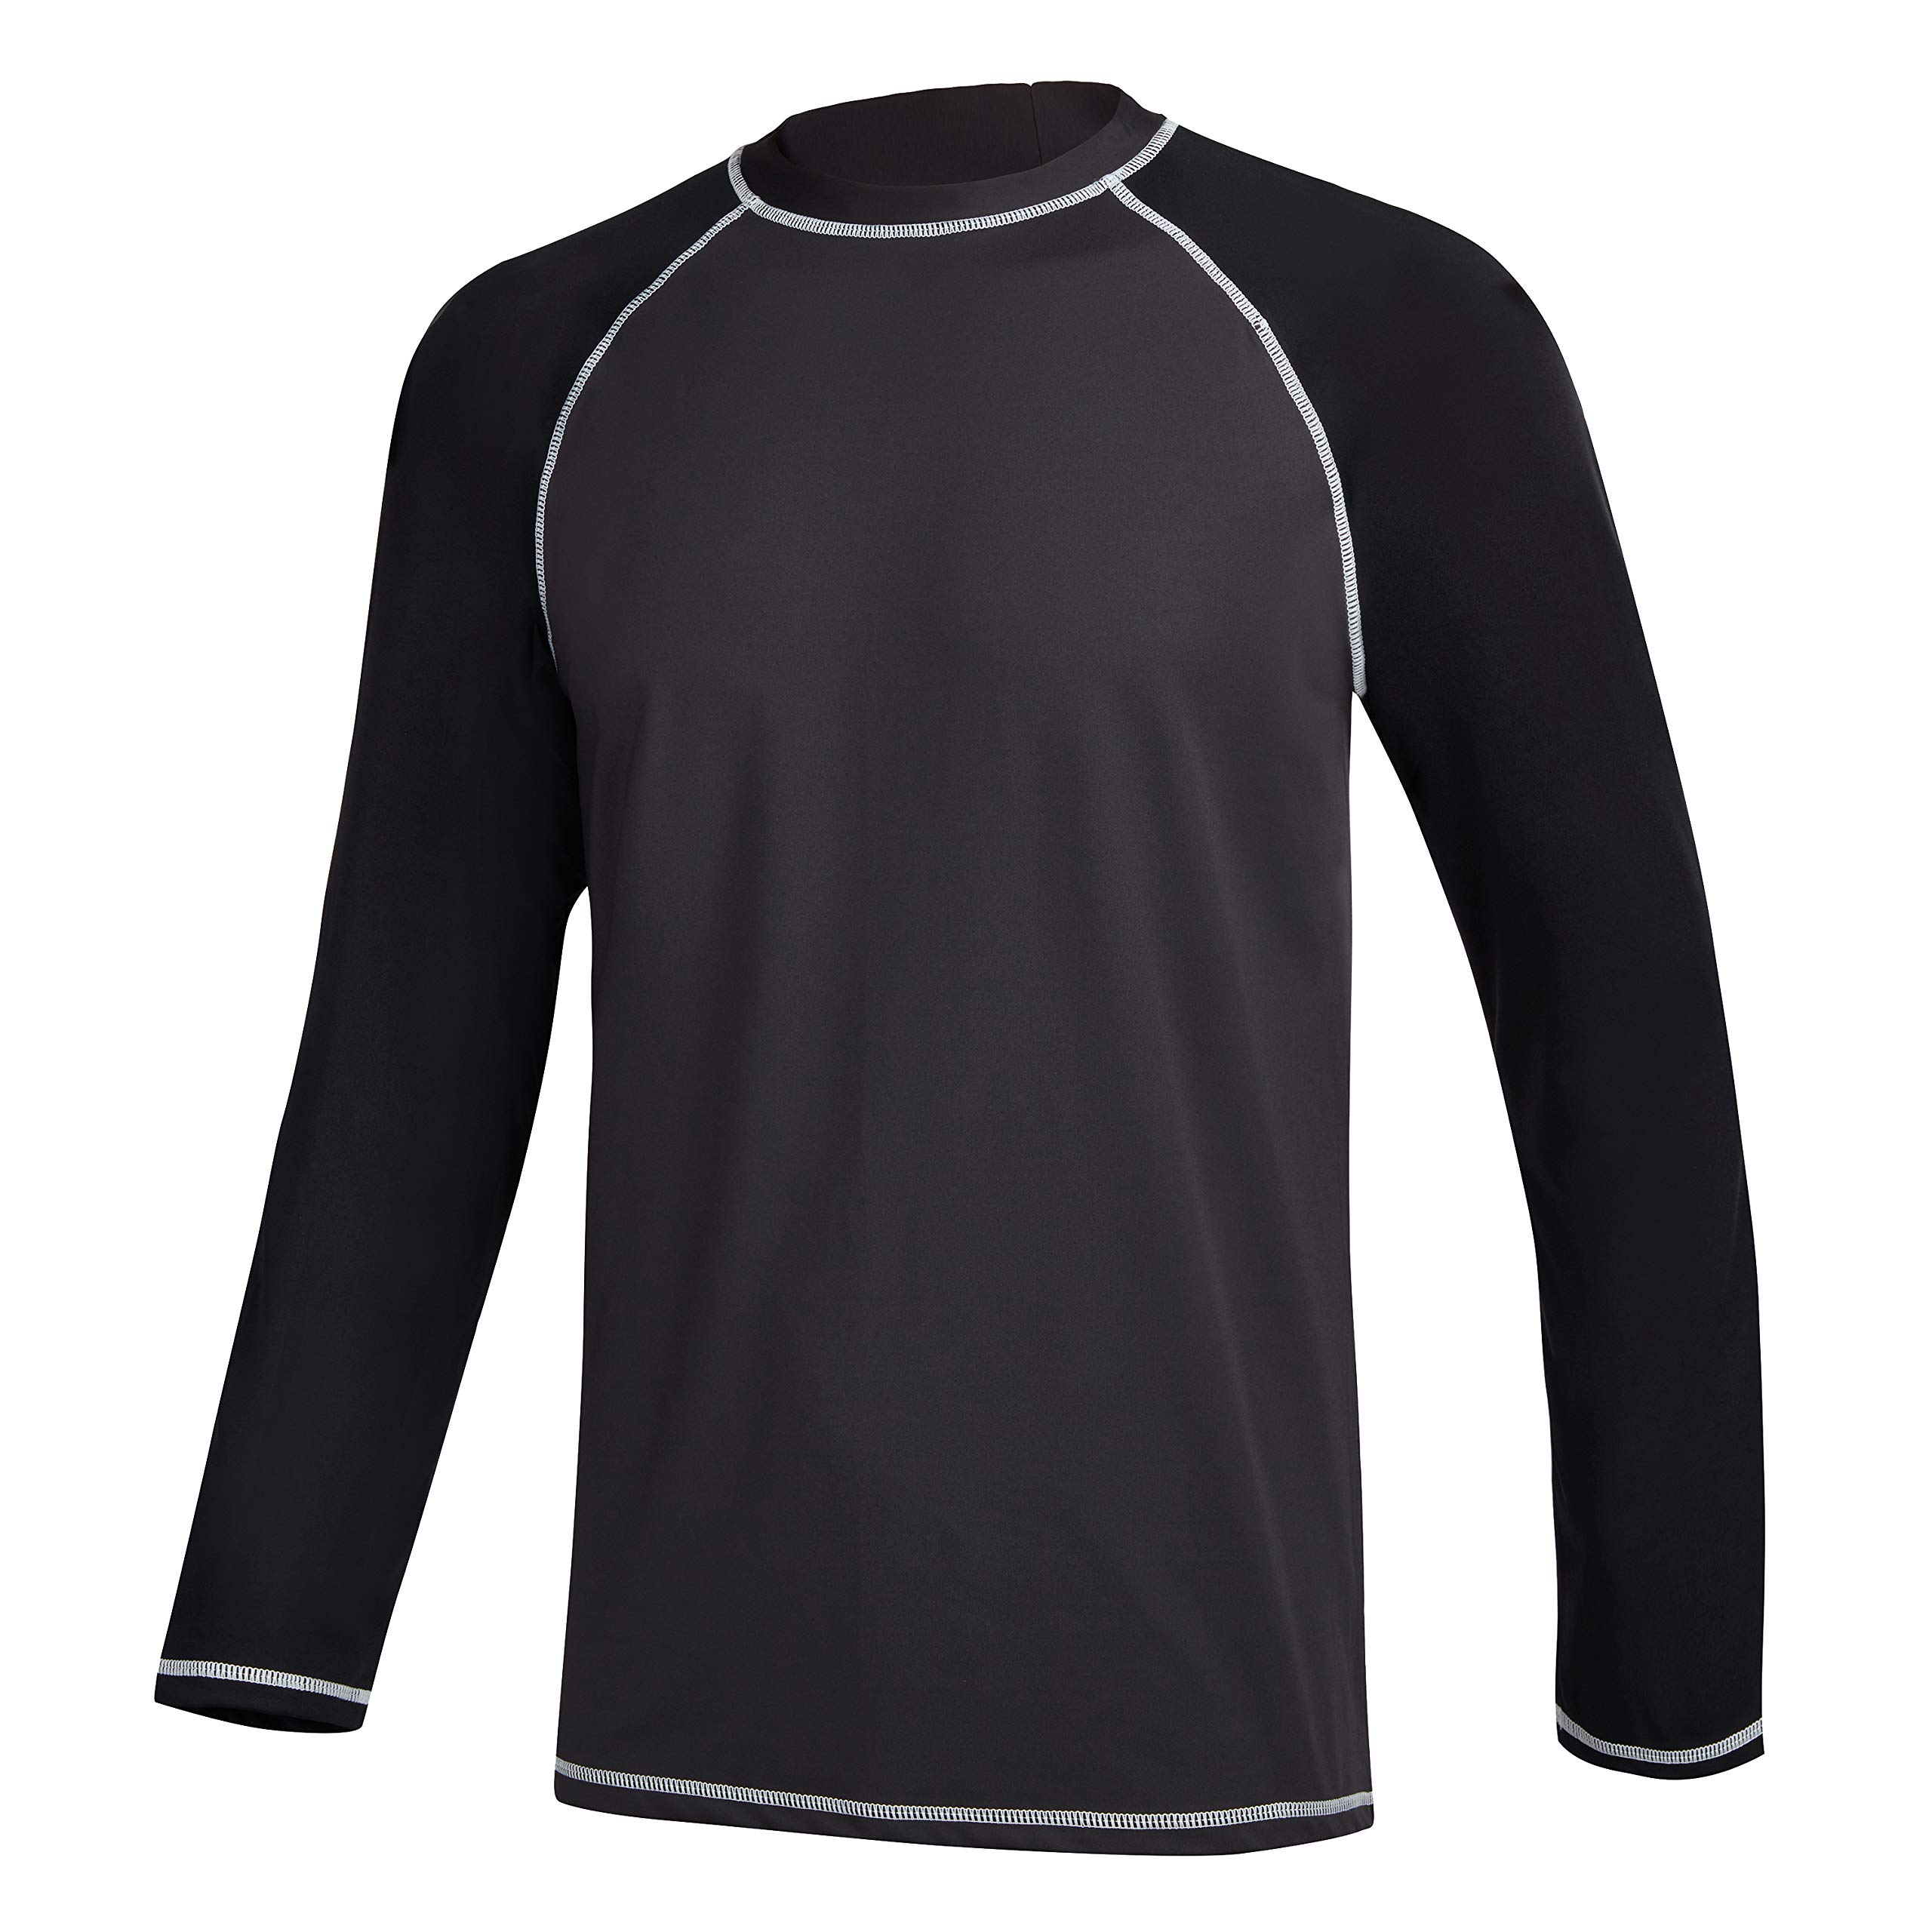 MILANKERR Men's Long Sleeve Athletic Workout Running T Shirts Rash Guard Swim Tee Loose fit UV Sun T Shirts UPF 50 XL(Chest: 43''- 45'') Gray Black by MILANKERR